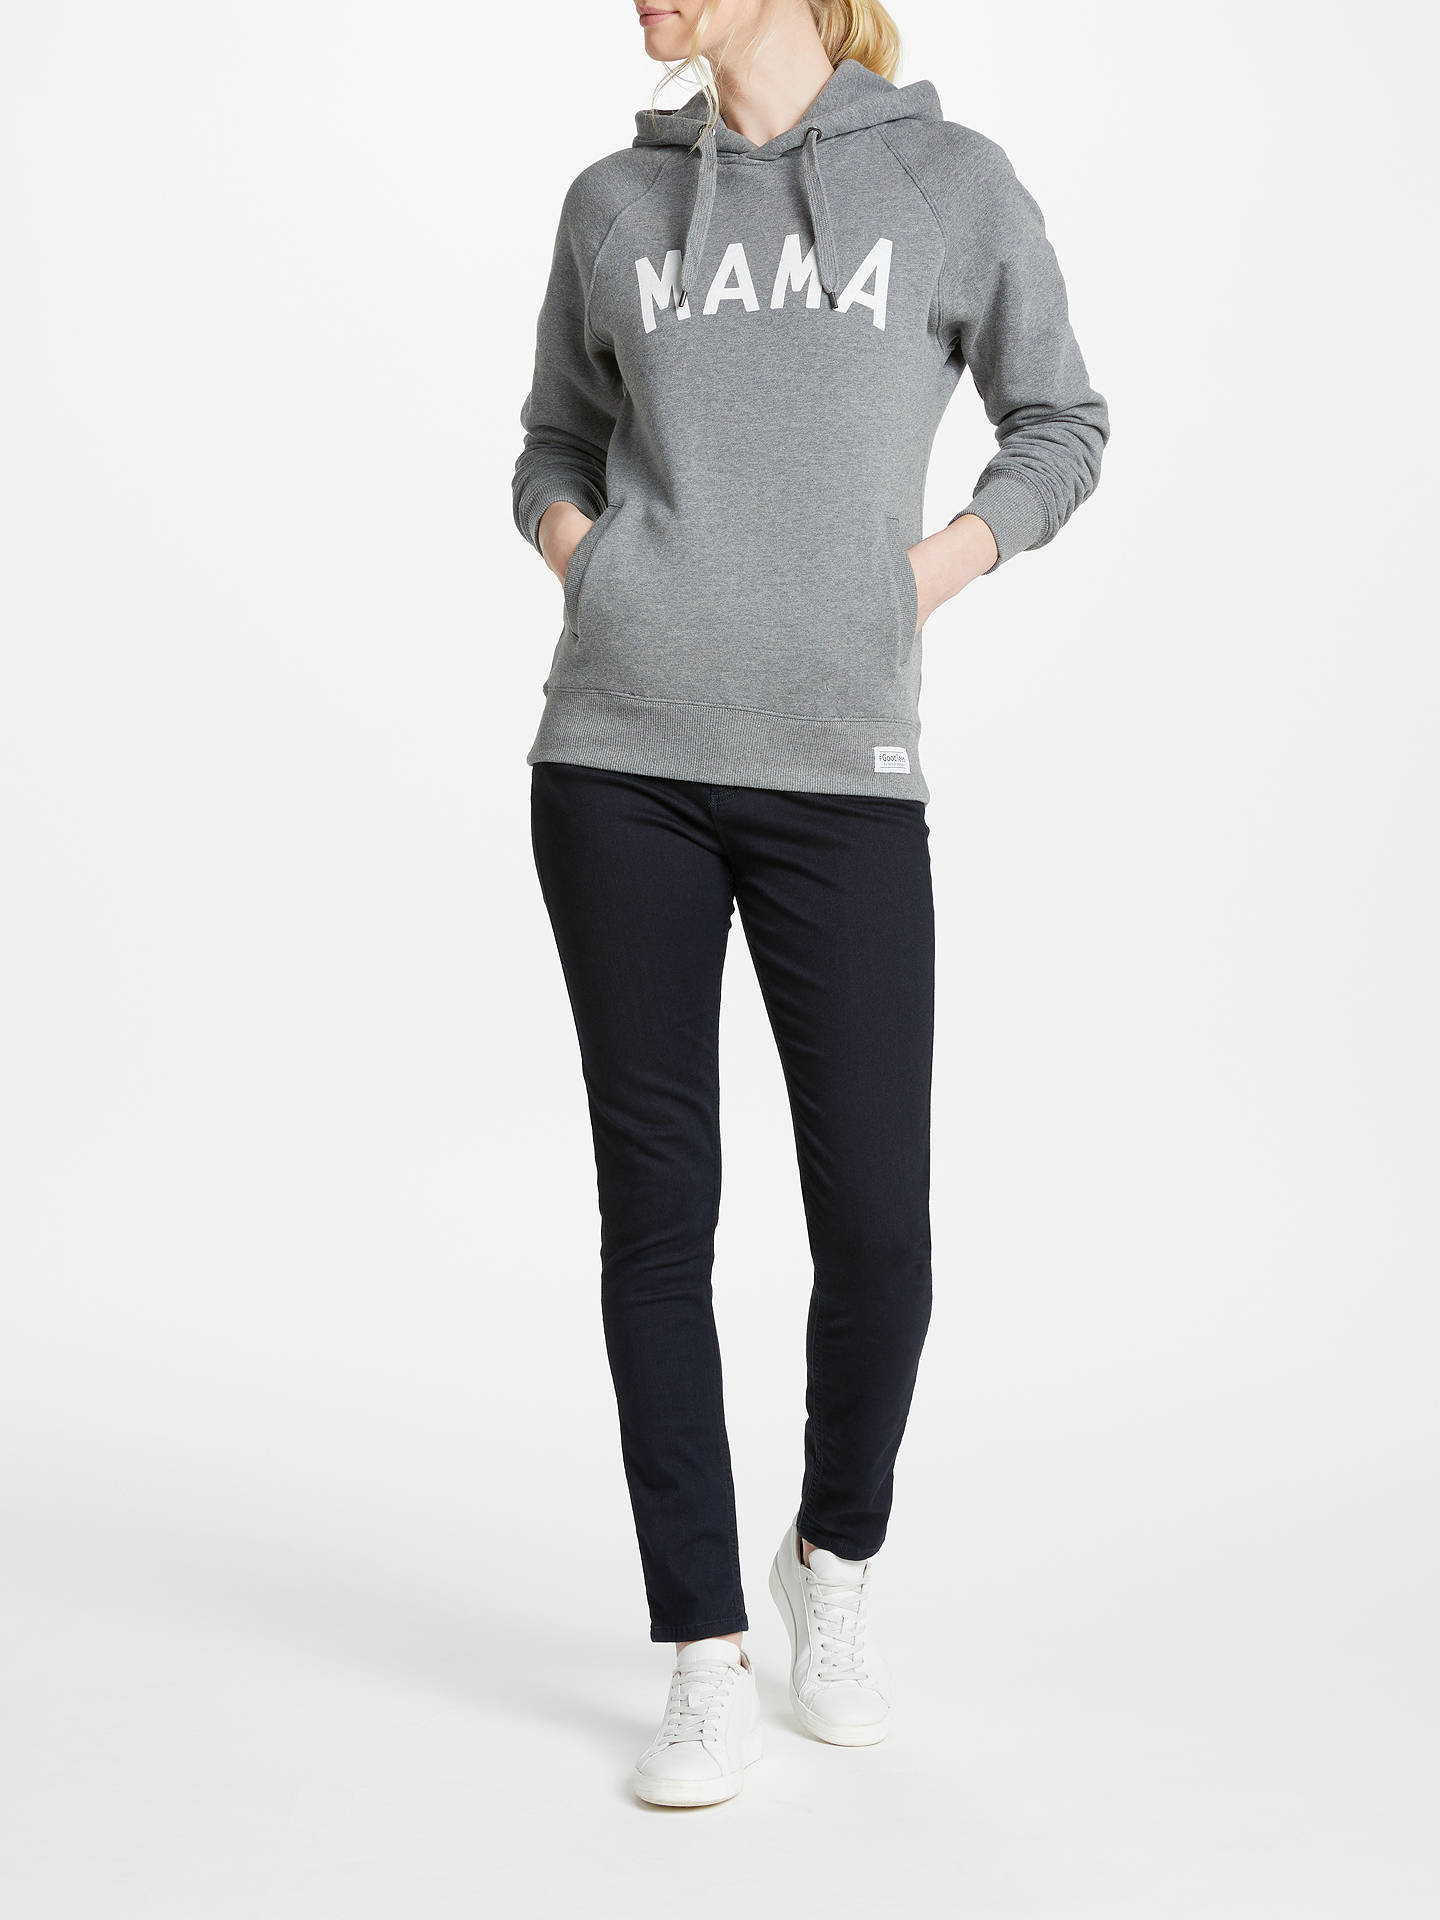 Buy Selfish Mother Mama Hoodie, Grey/White, S Online at johnlewis.com